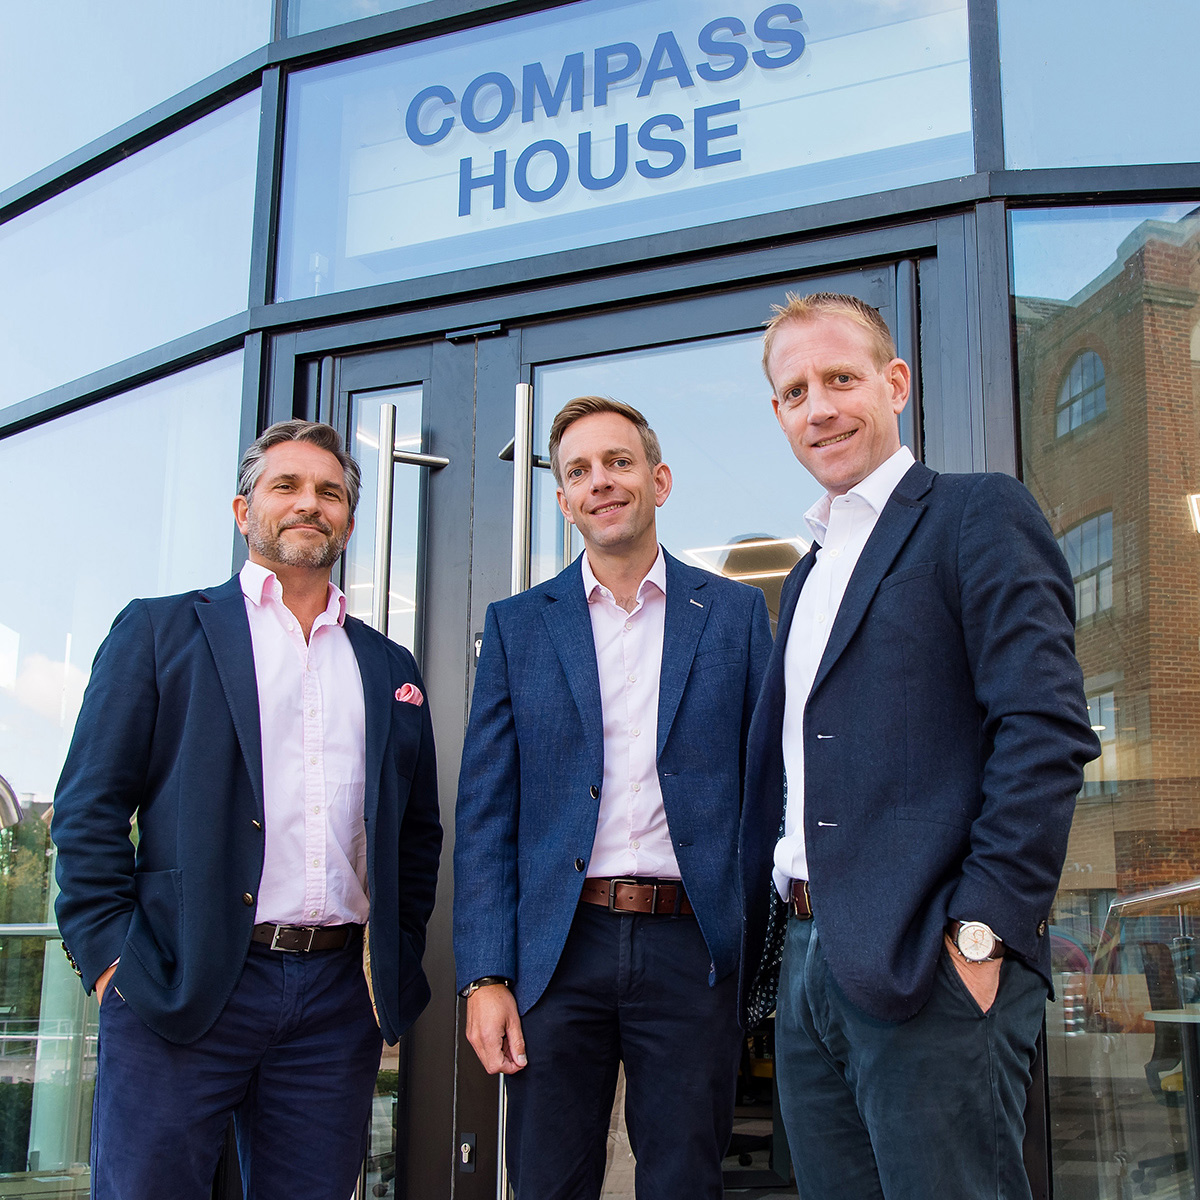 British Business Investments Announces New £15m Commitment to Compass